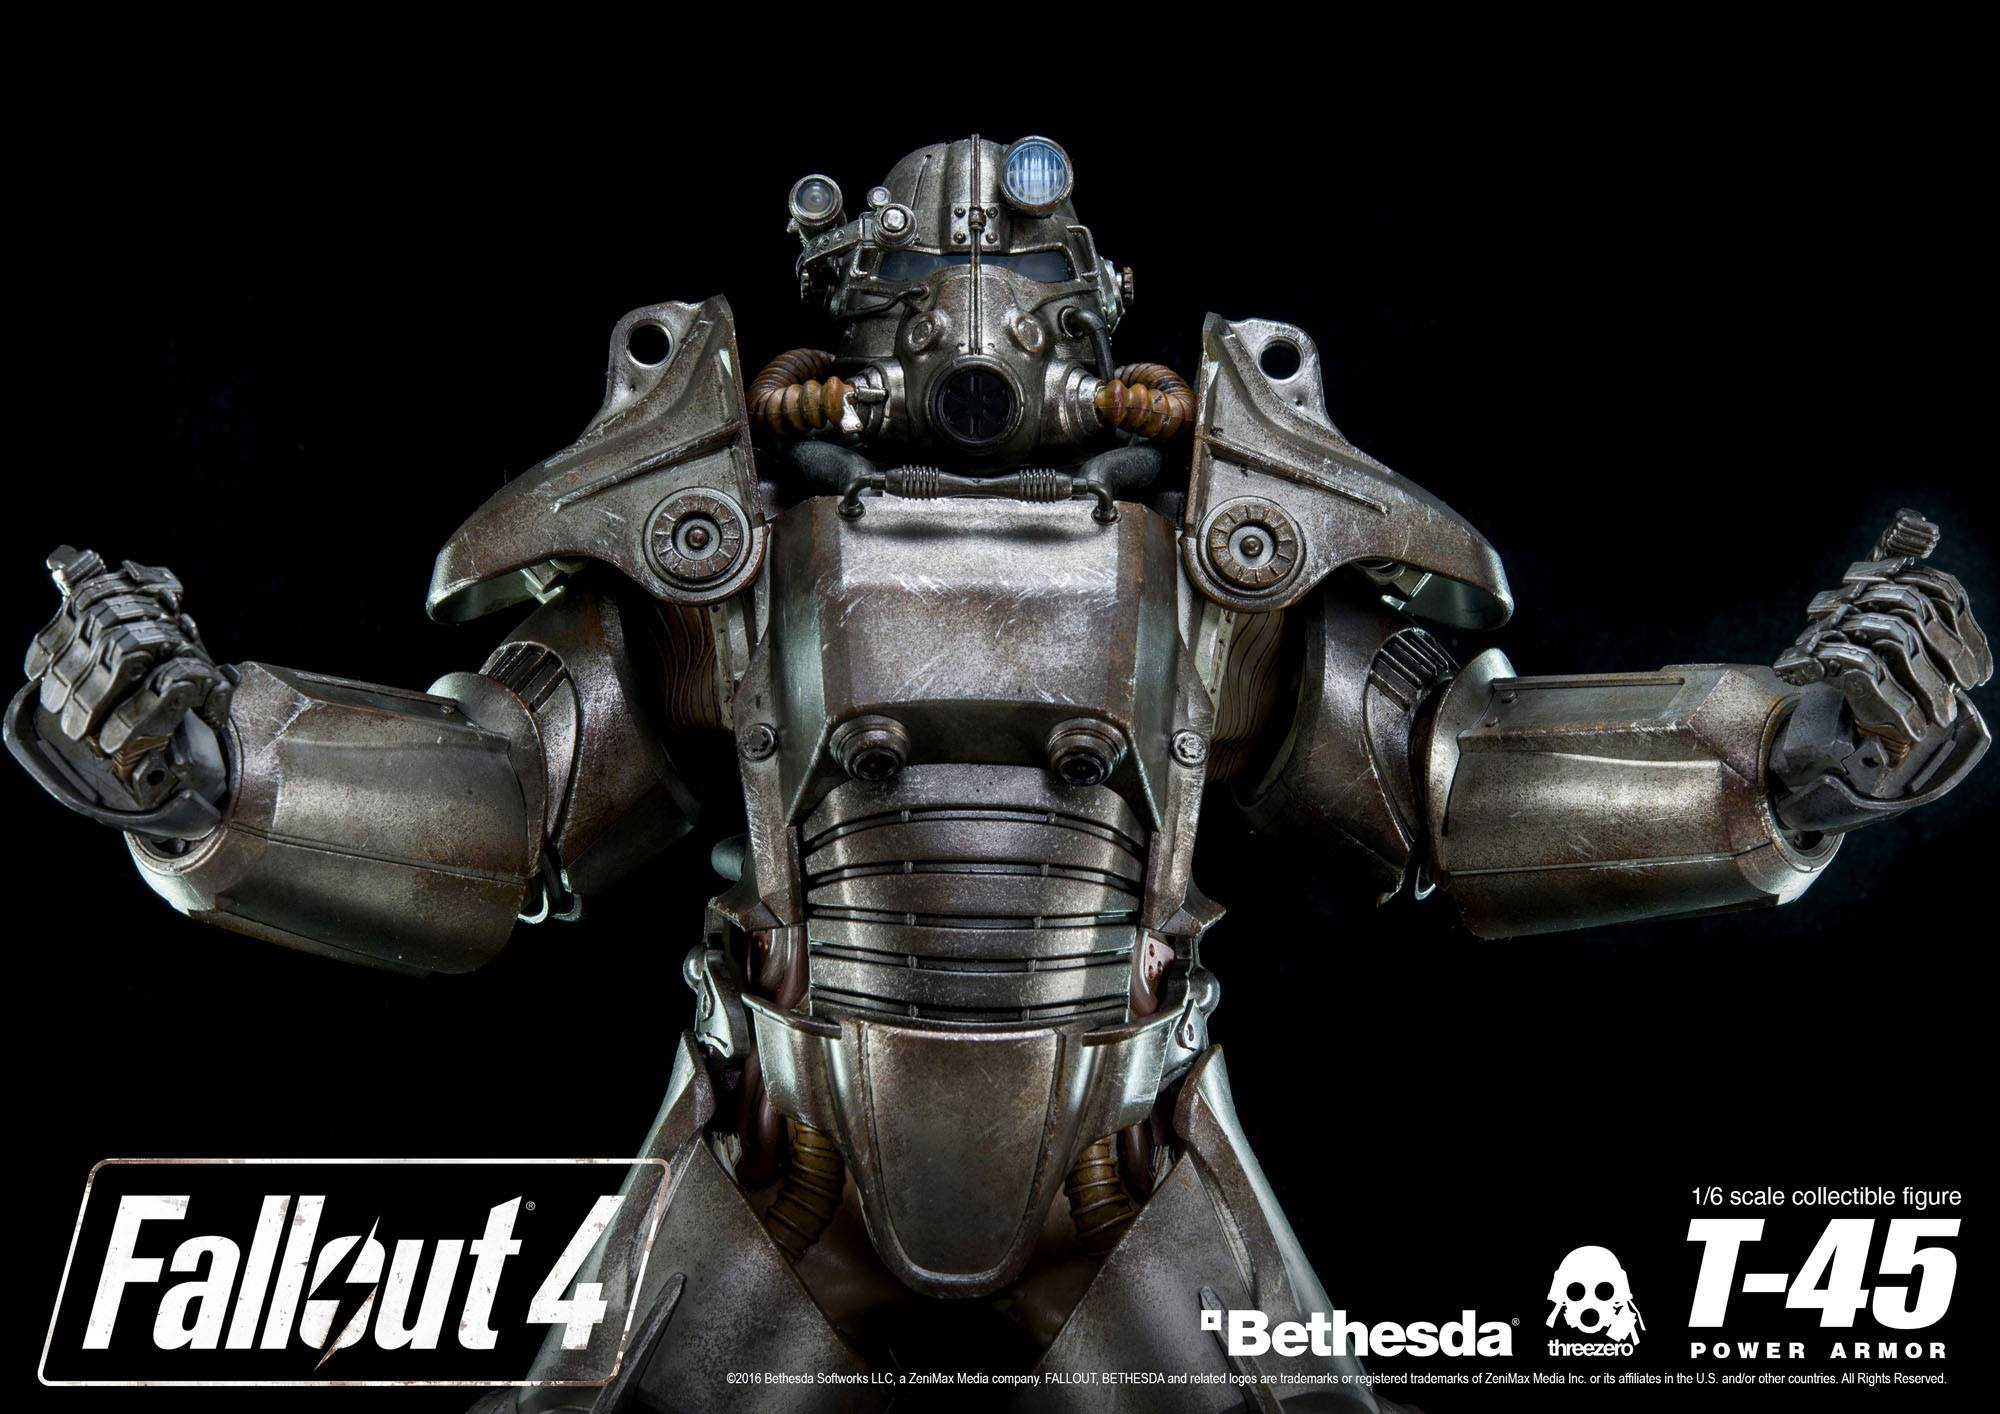 Fallout 4 2015 Promotional Art Mobygames